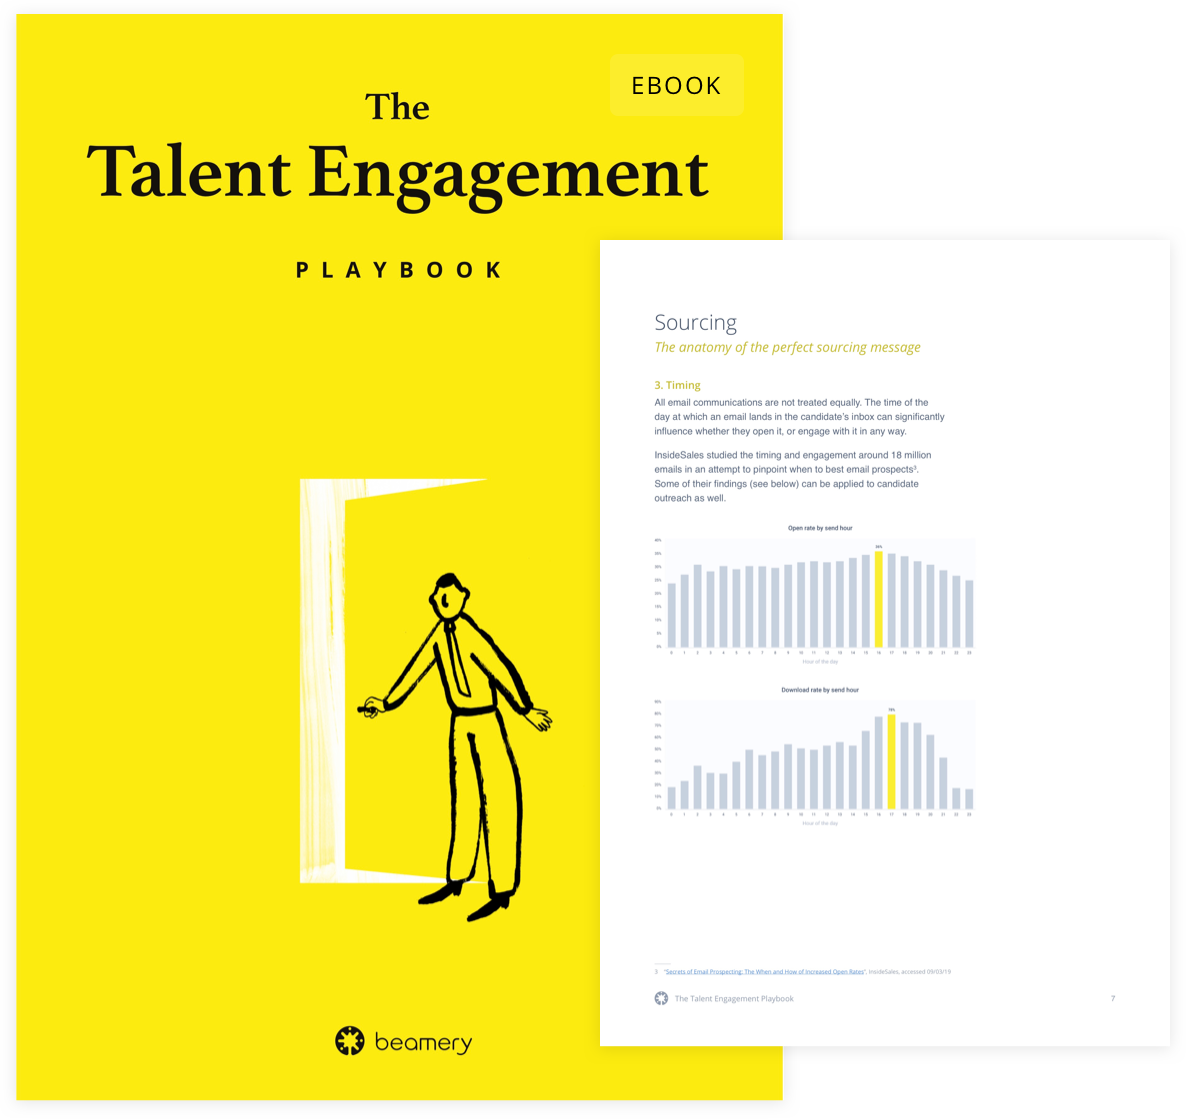 The Talent Engagement Playbook